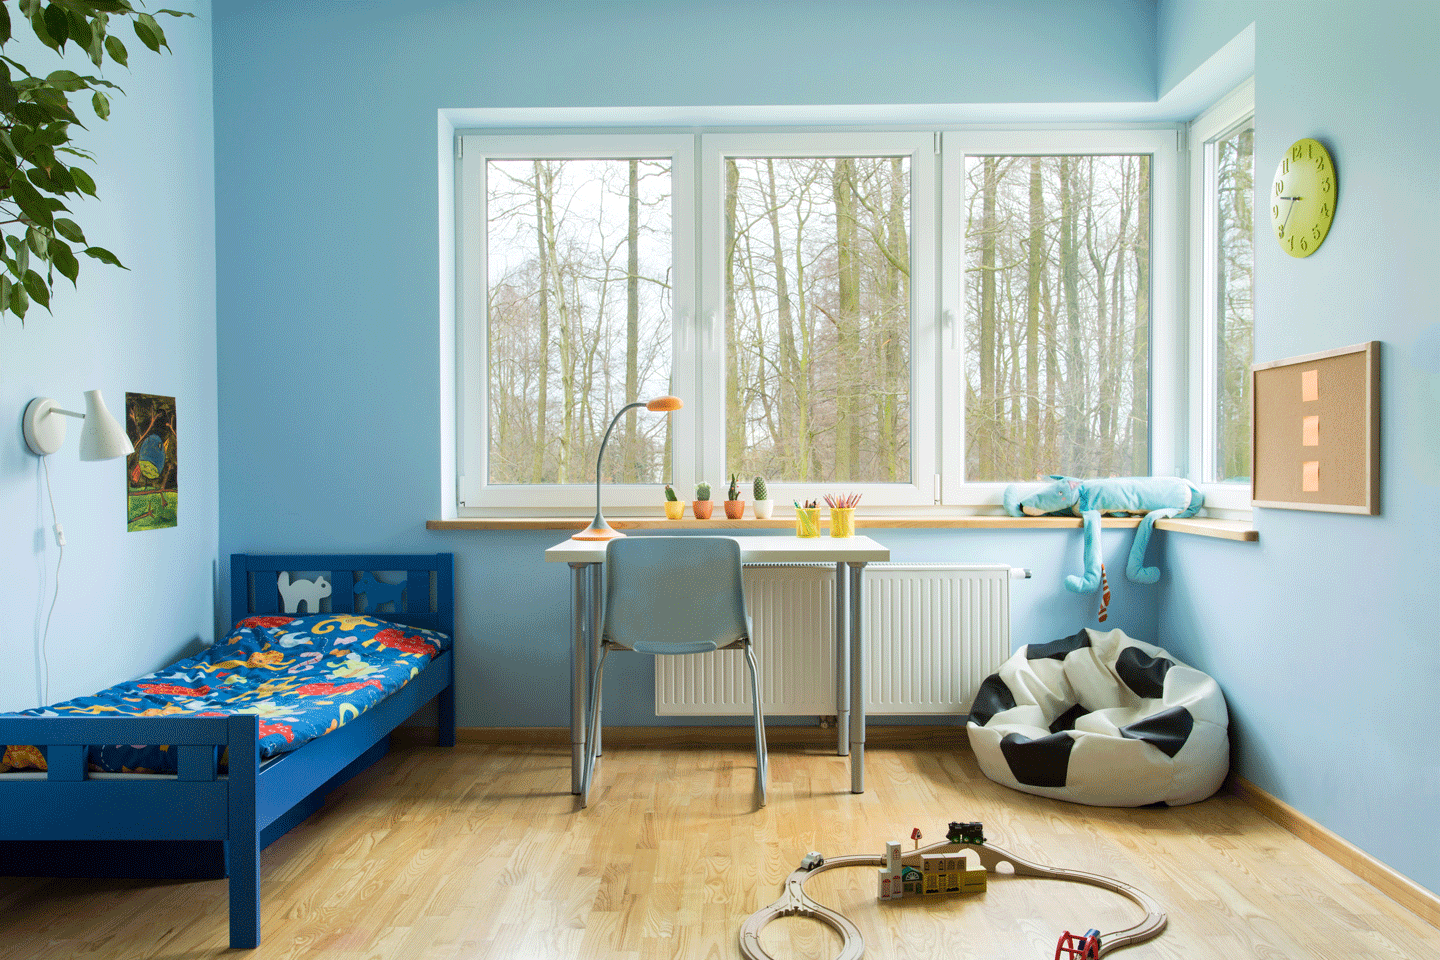 5 Things to Consider Before Painting a Child's Bedroom